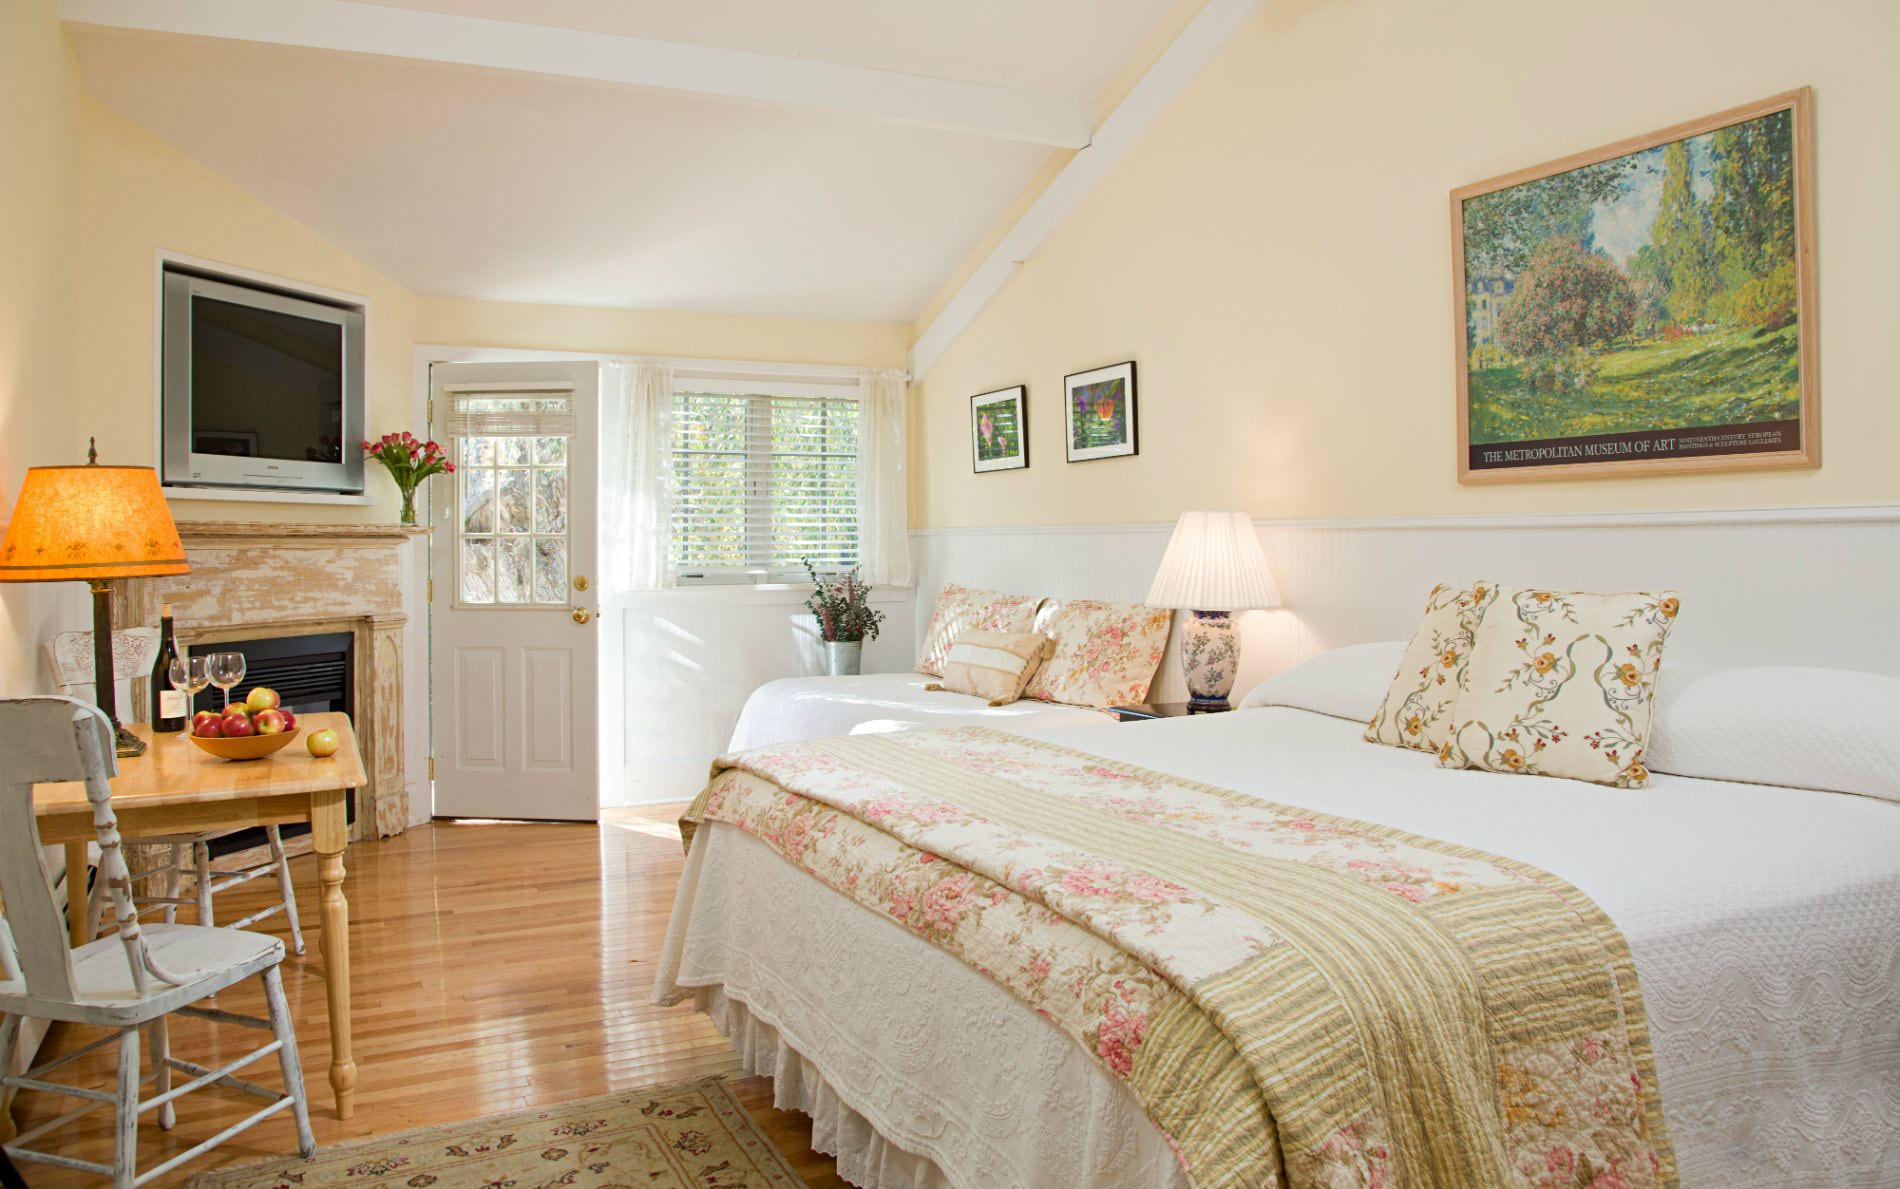 Beige and white vaulted room with wood floors, flat screen tv, fireplace, wooden table and chairs and white covered bed